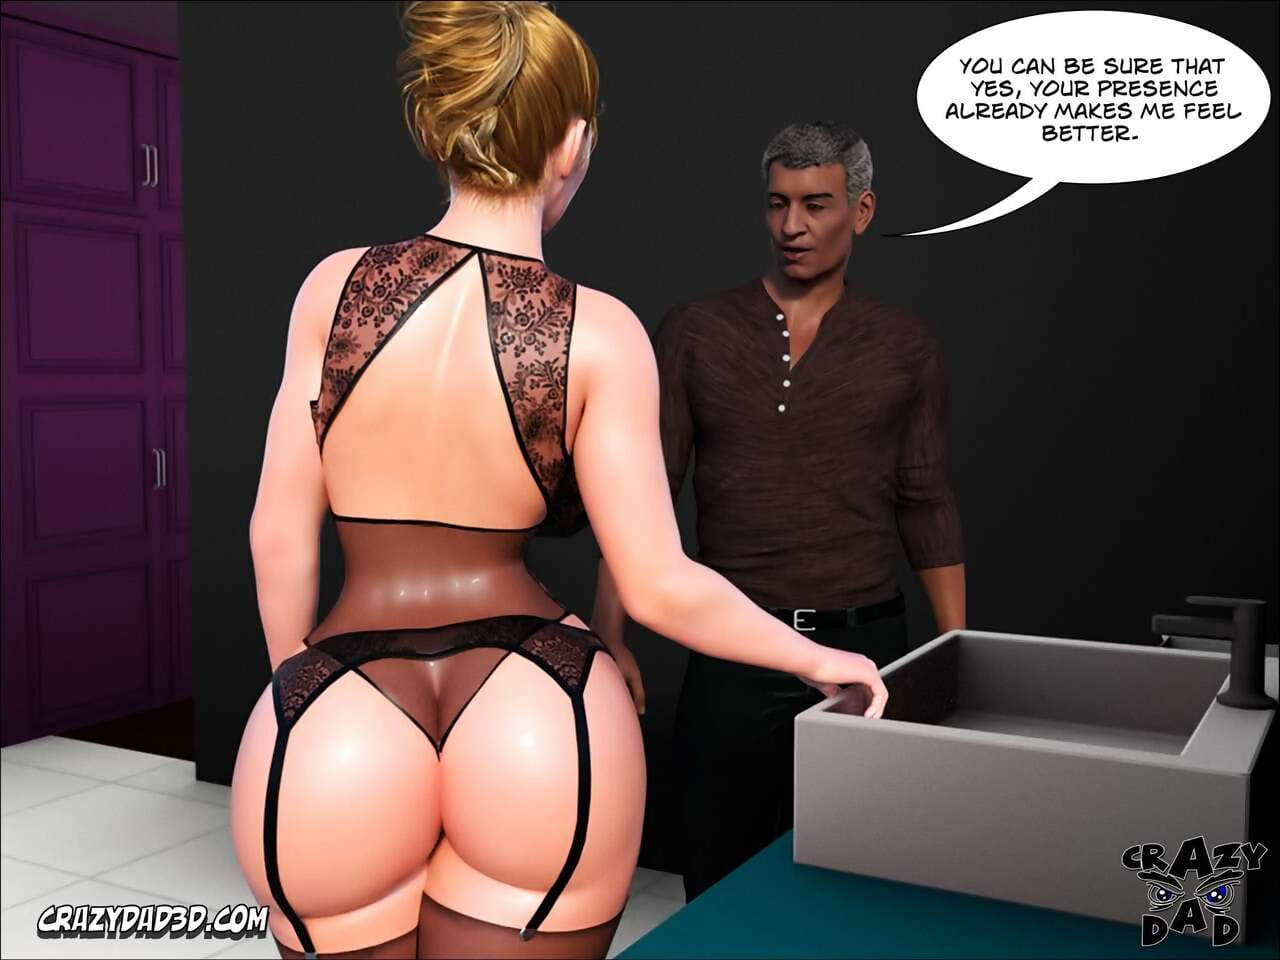 CrazyDad3d Father-in-Law at Home 1 - part 2